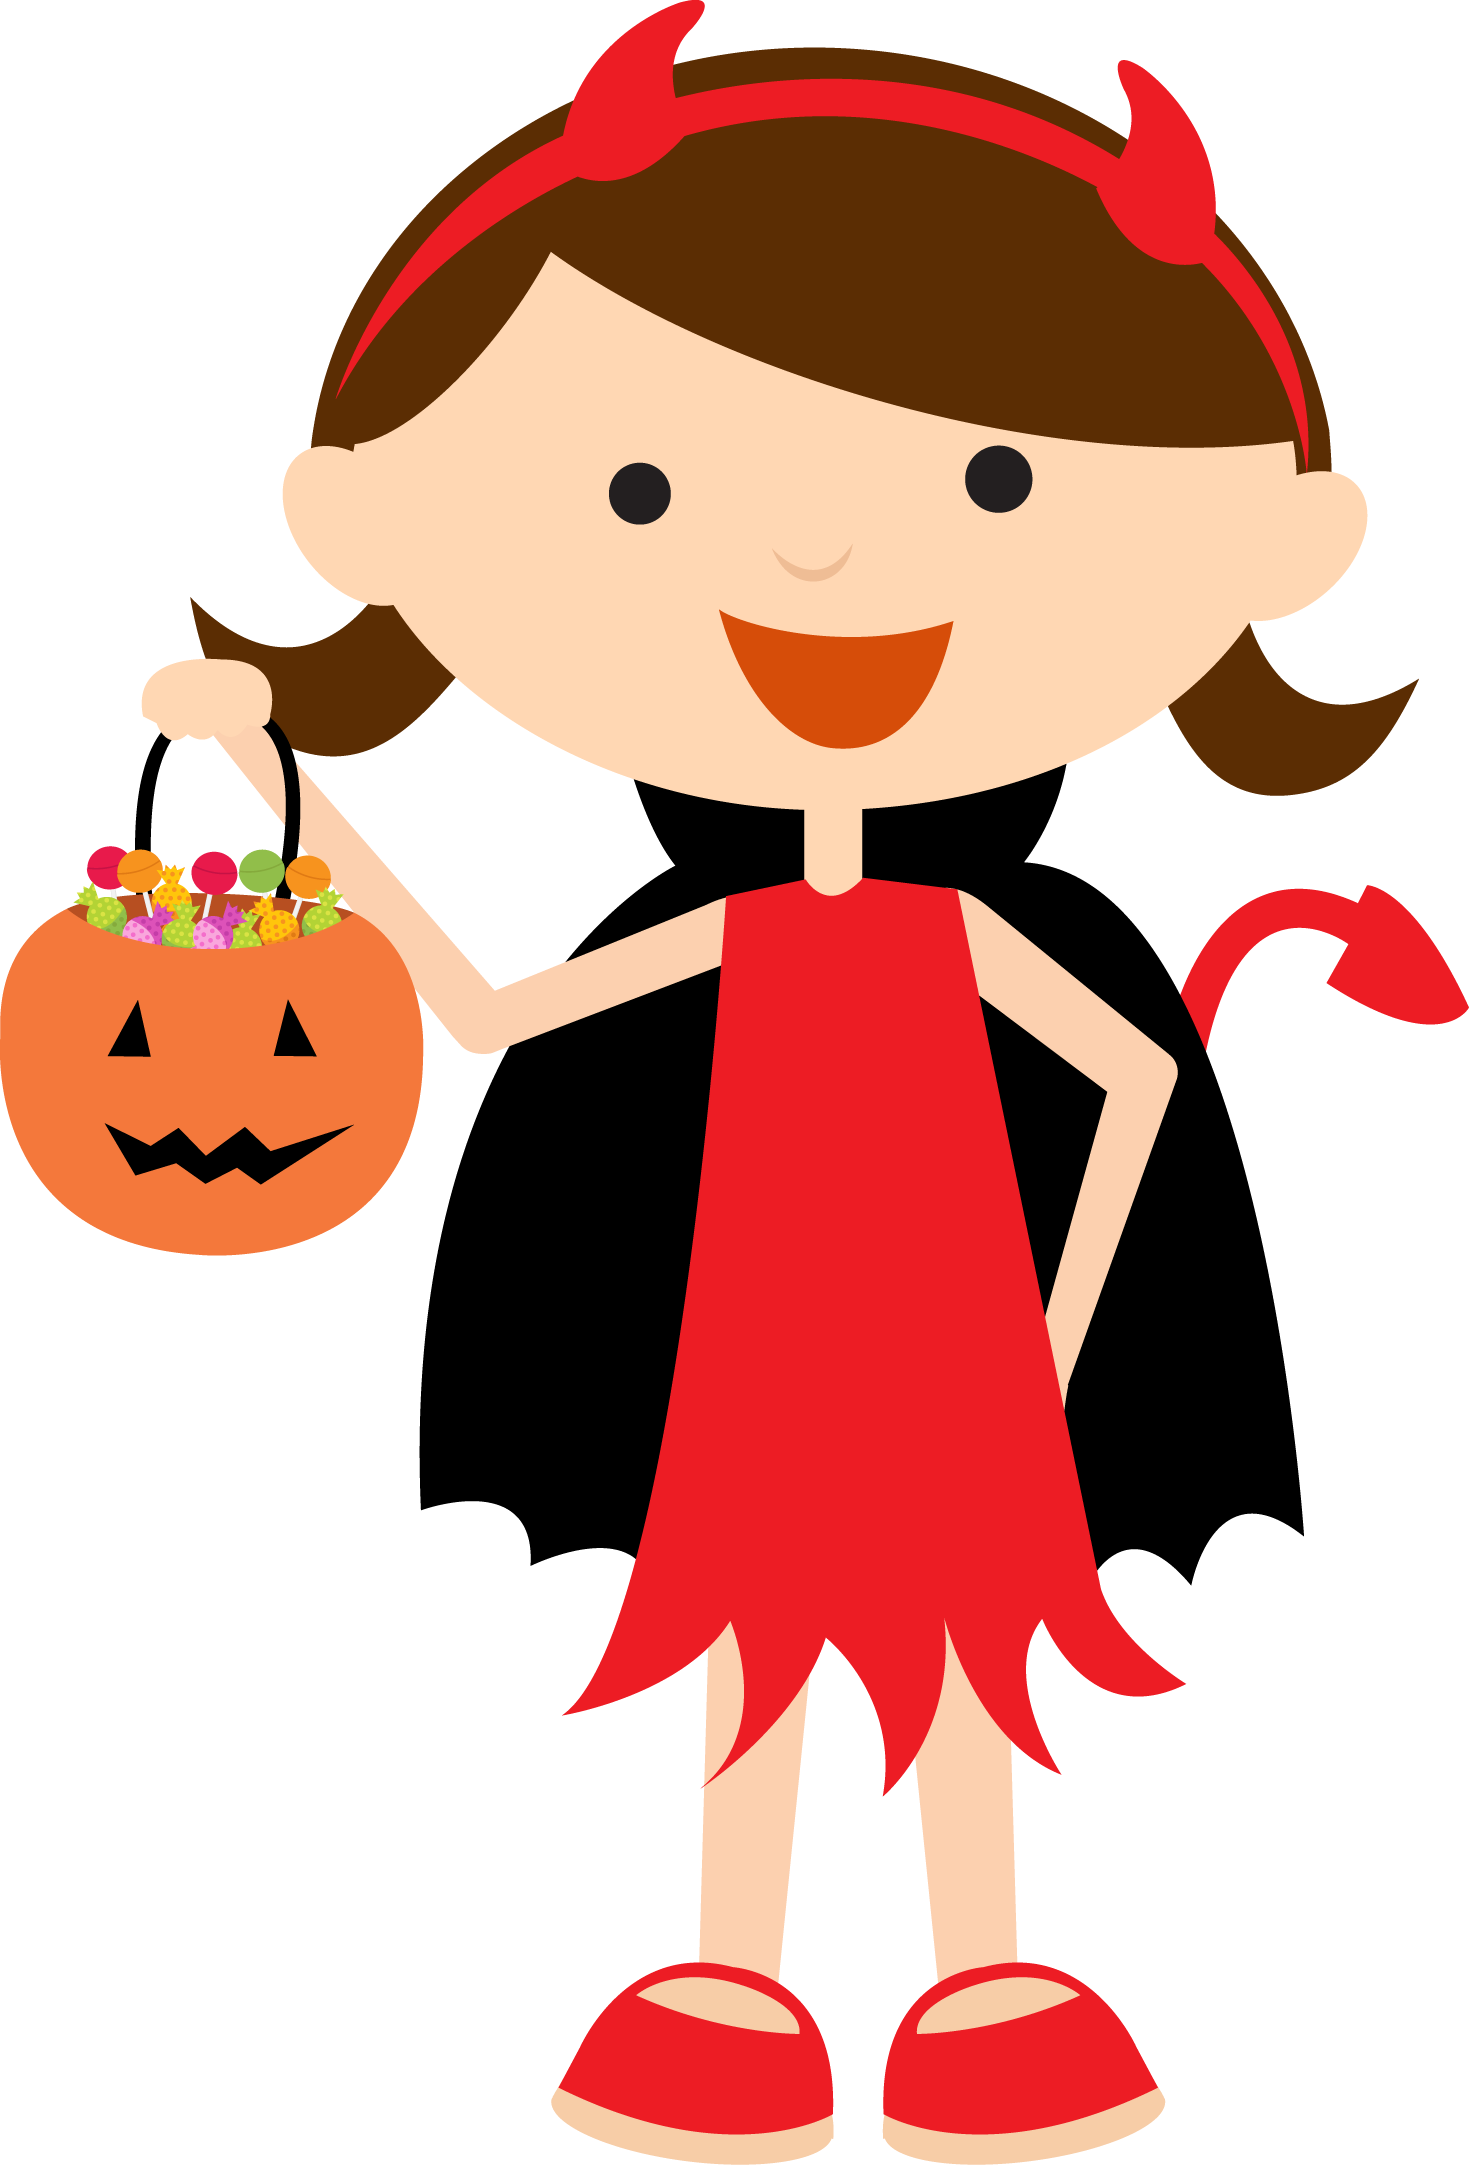 Halloween clipart devil svg freeuse download Halloween - BDhalloweentrickortreat3.png - Minus | felt- holidays ... svg freeuse download